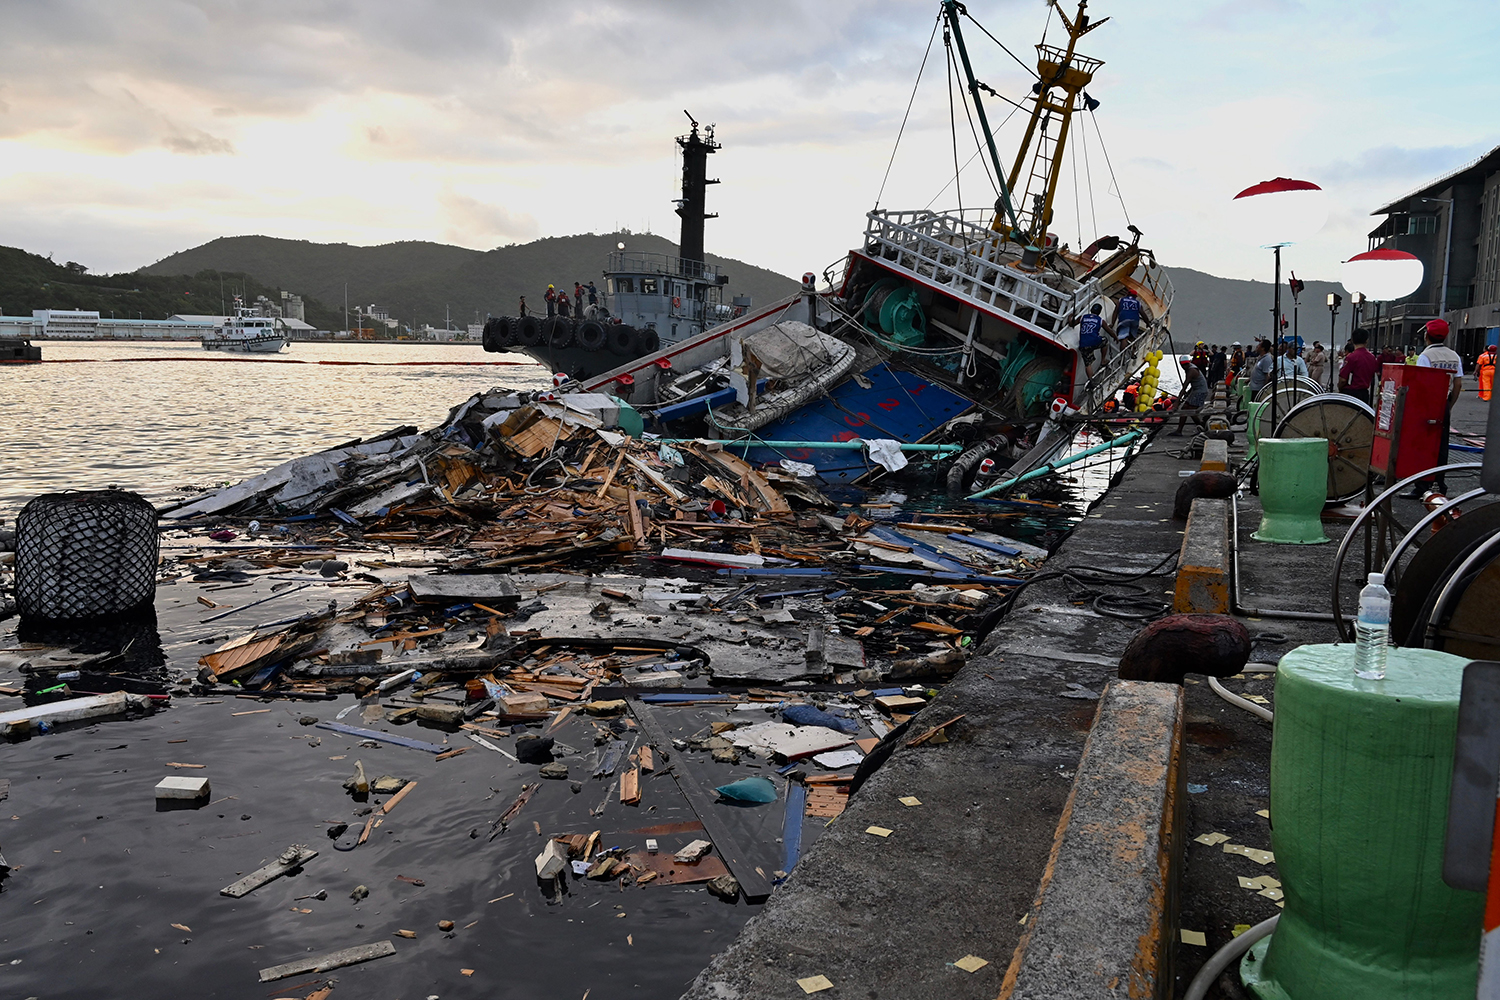 A fishing boat is seen smashed after a bridge collapsed in the Nanfangao fish harbour in Suao township, eastern Taiwan, killing at least four people on Oct. 2. SAM YEH/AFP via Getty Images